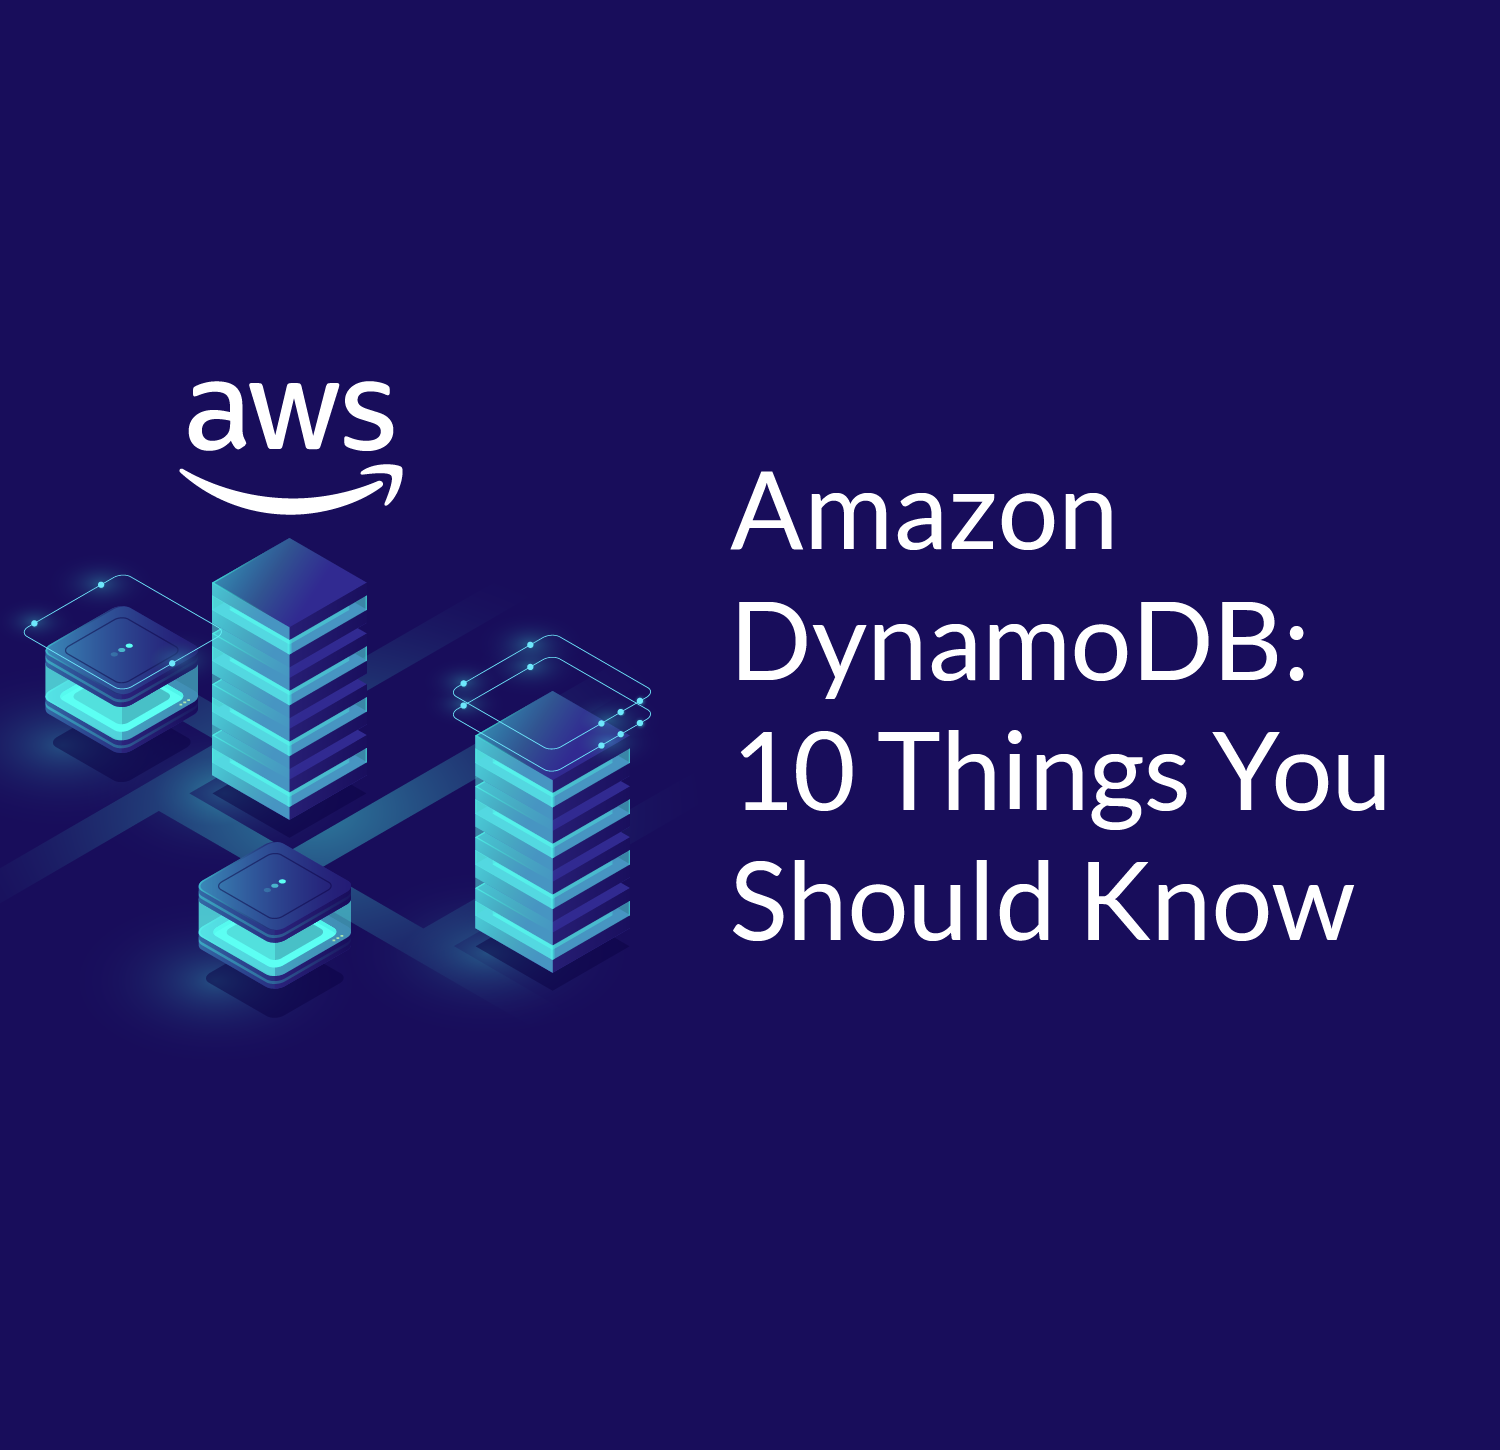 Amazon DynamoDB: what it is and what you really should know